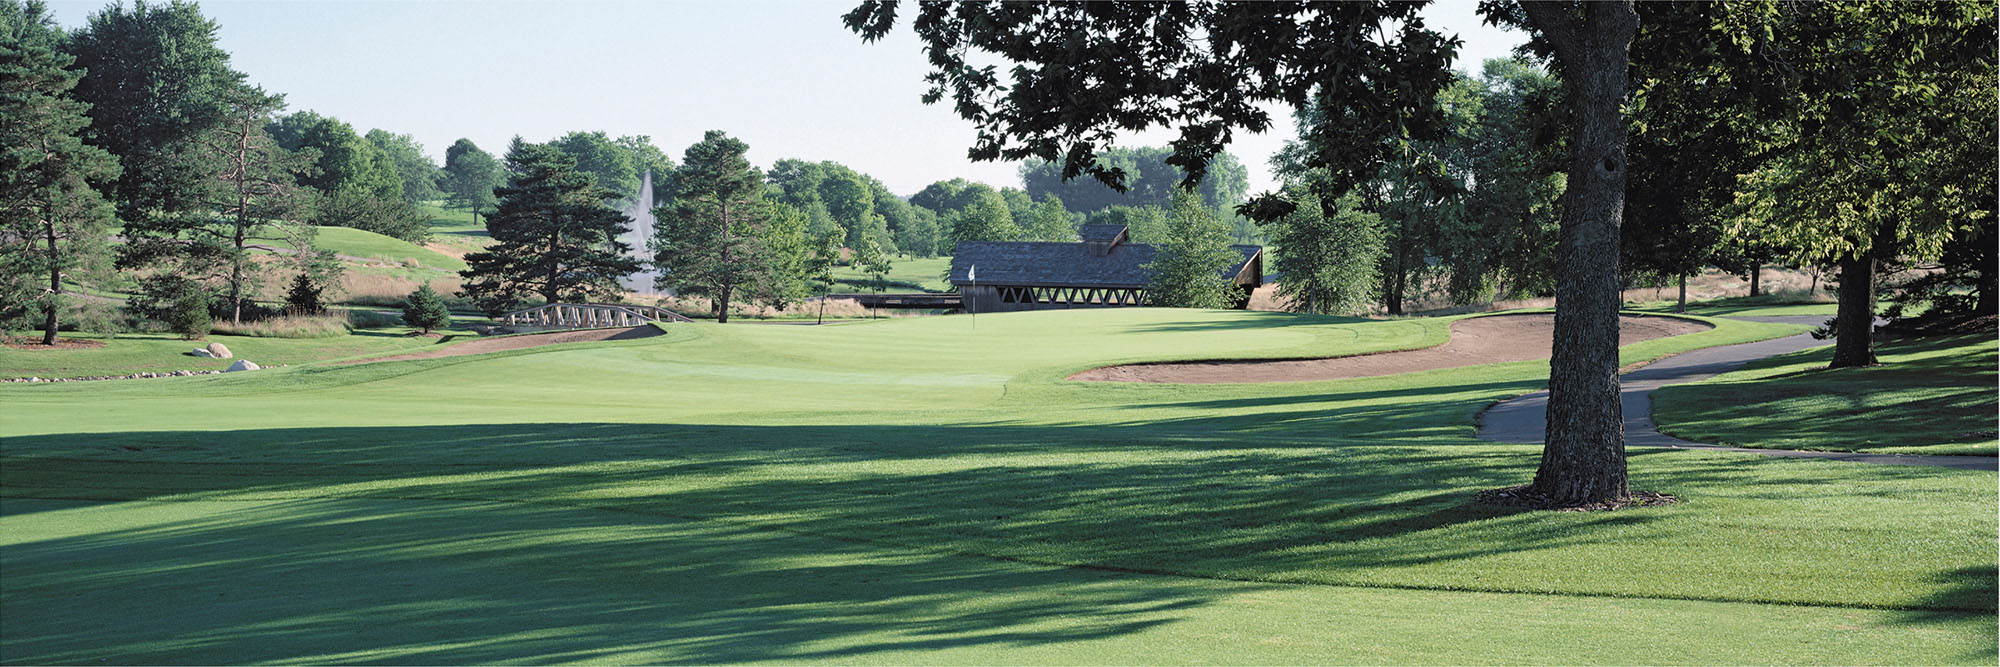 Golf Course Image - Des Moines Country Club North No. 10